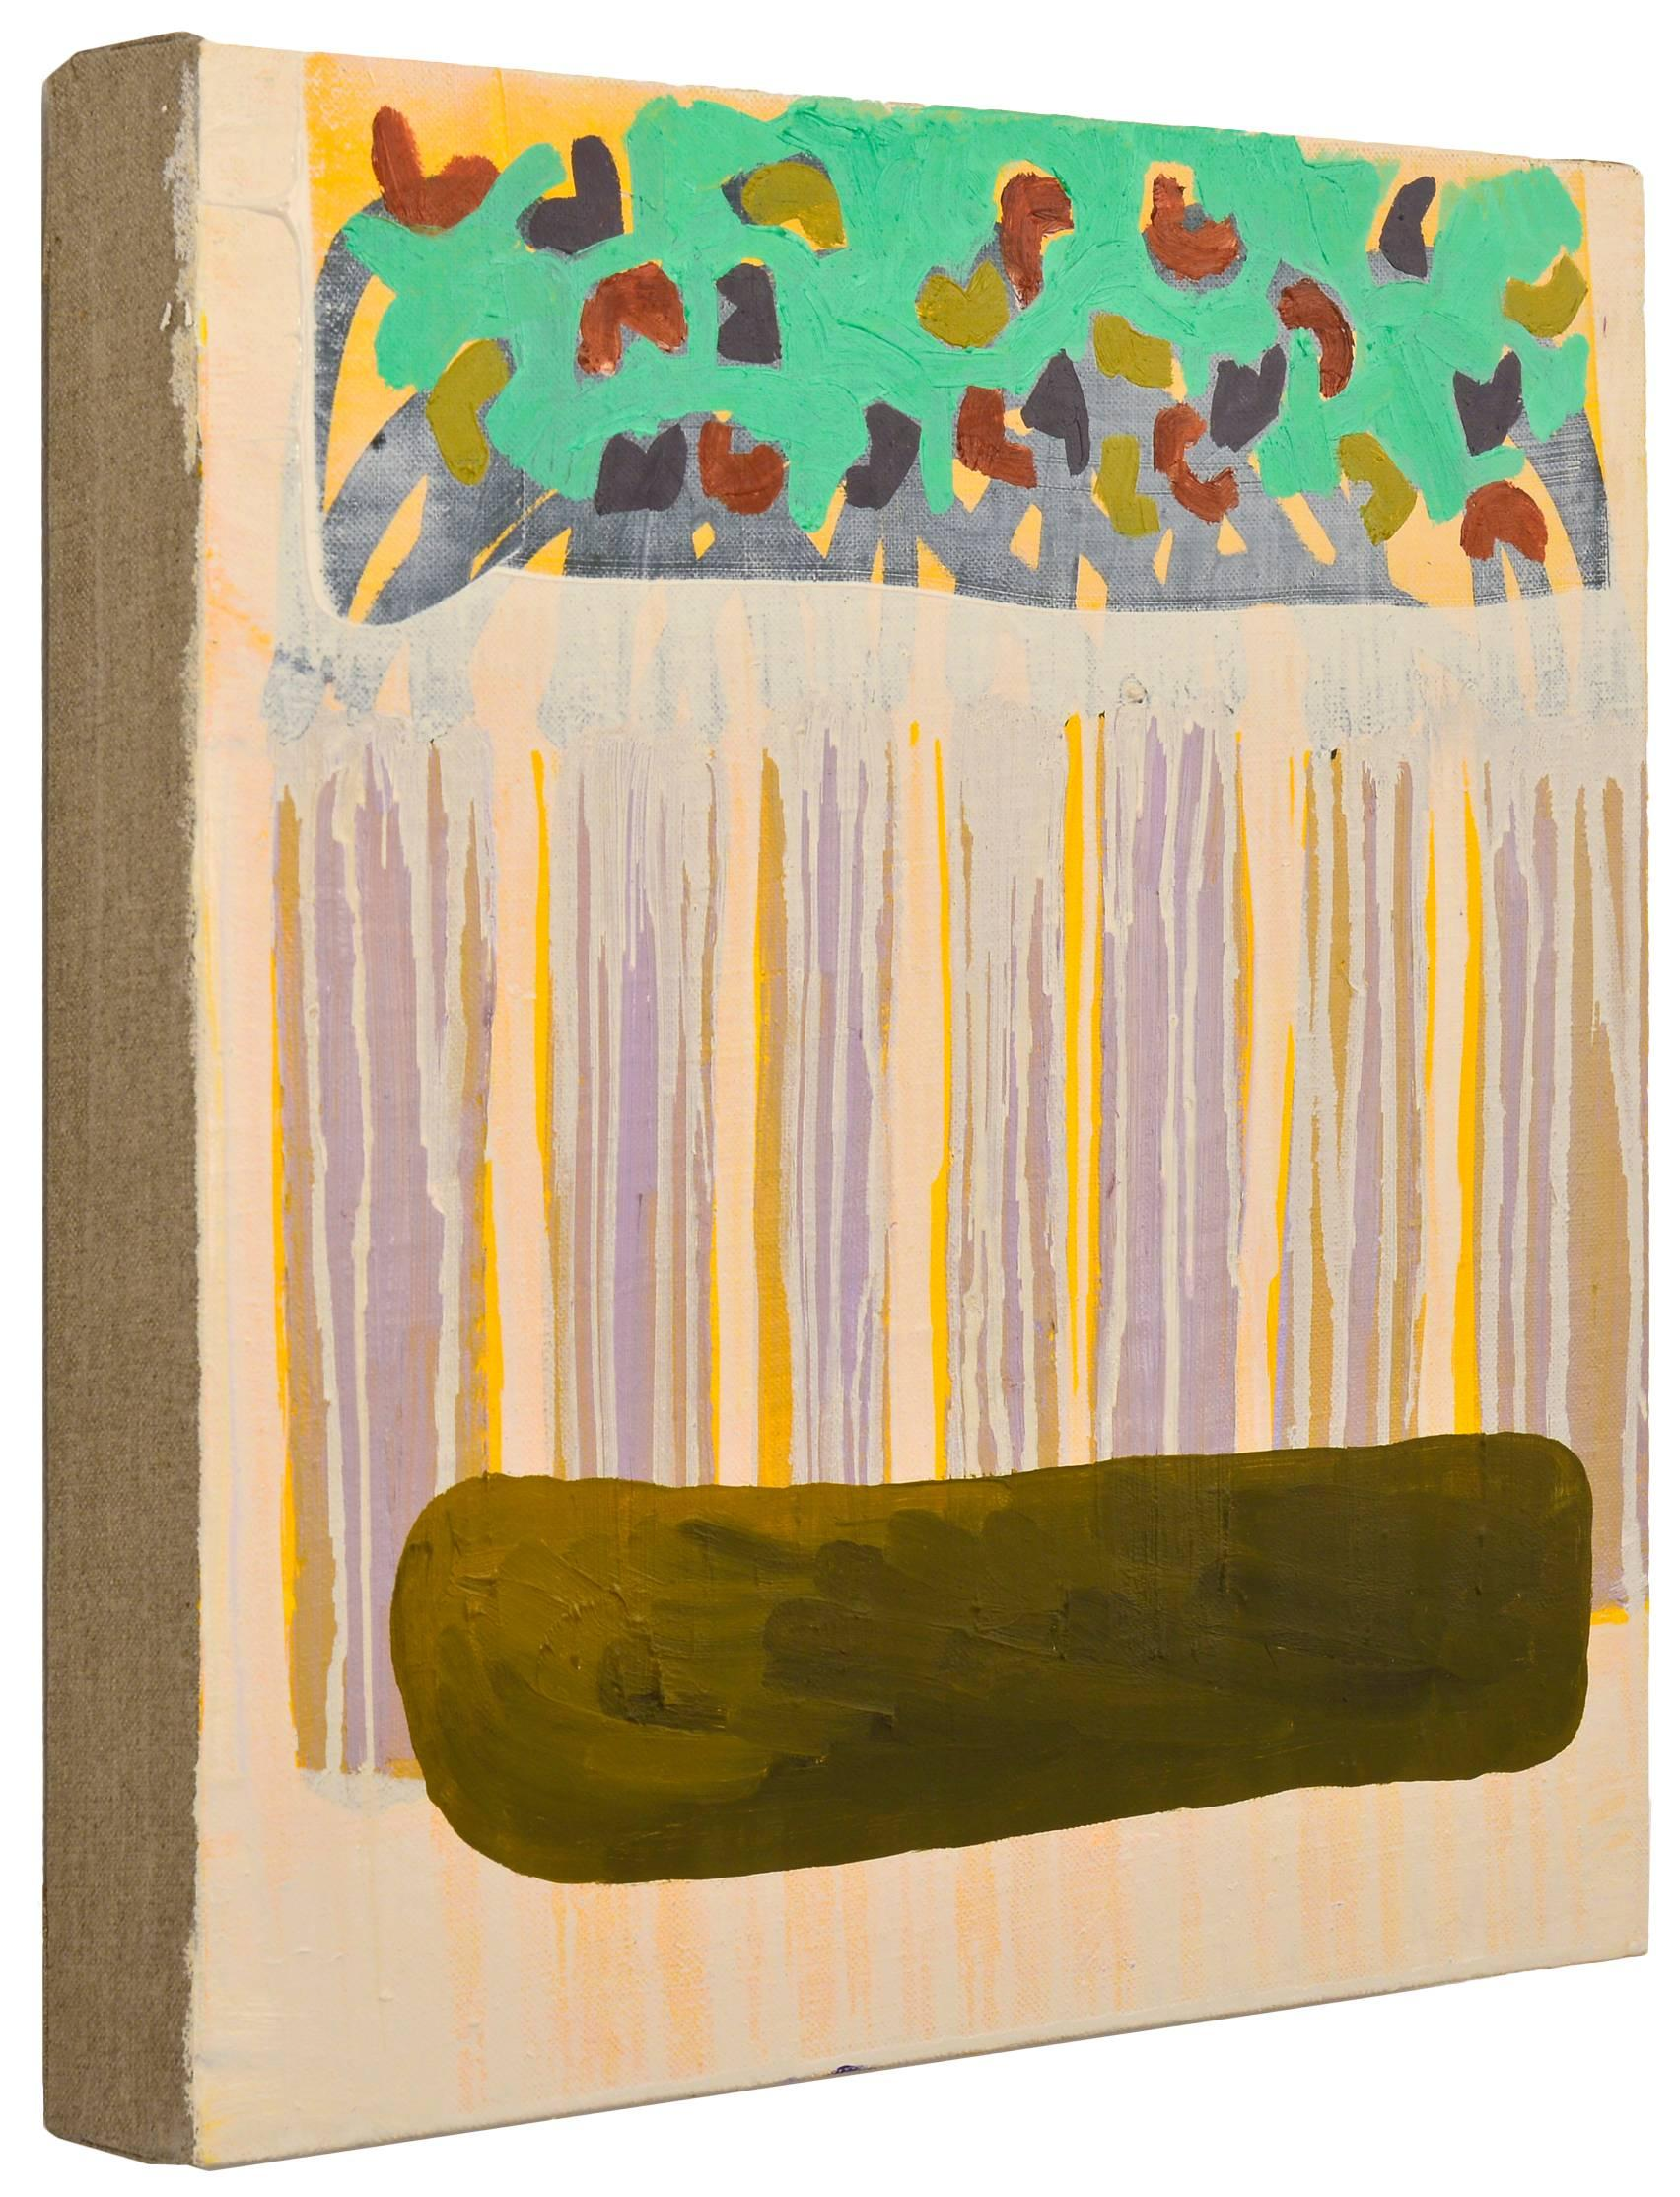 Becky Yazdan - Weeping Willow, Painting For Sale at 1stdibs